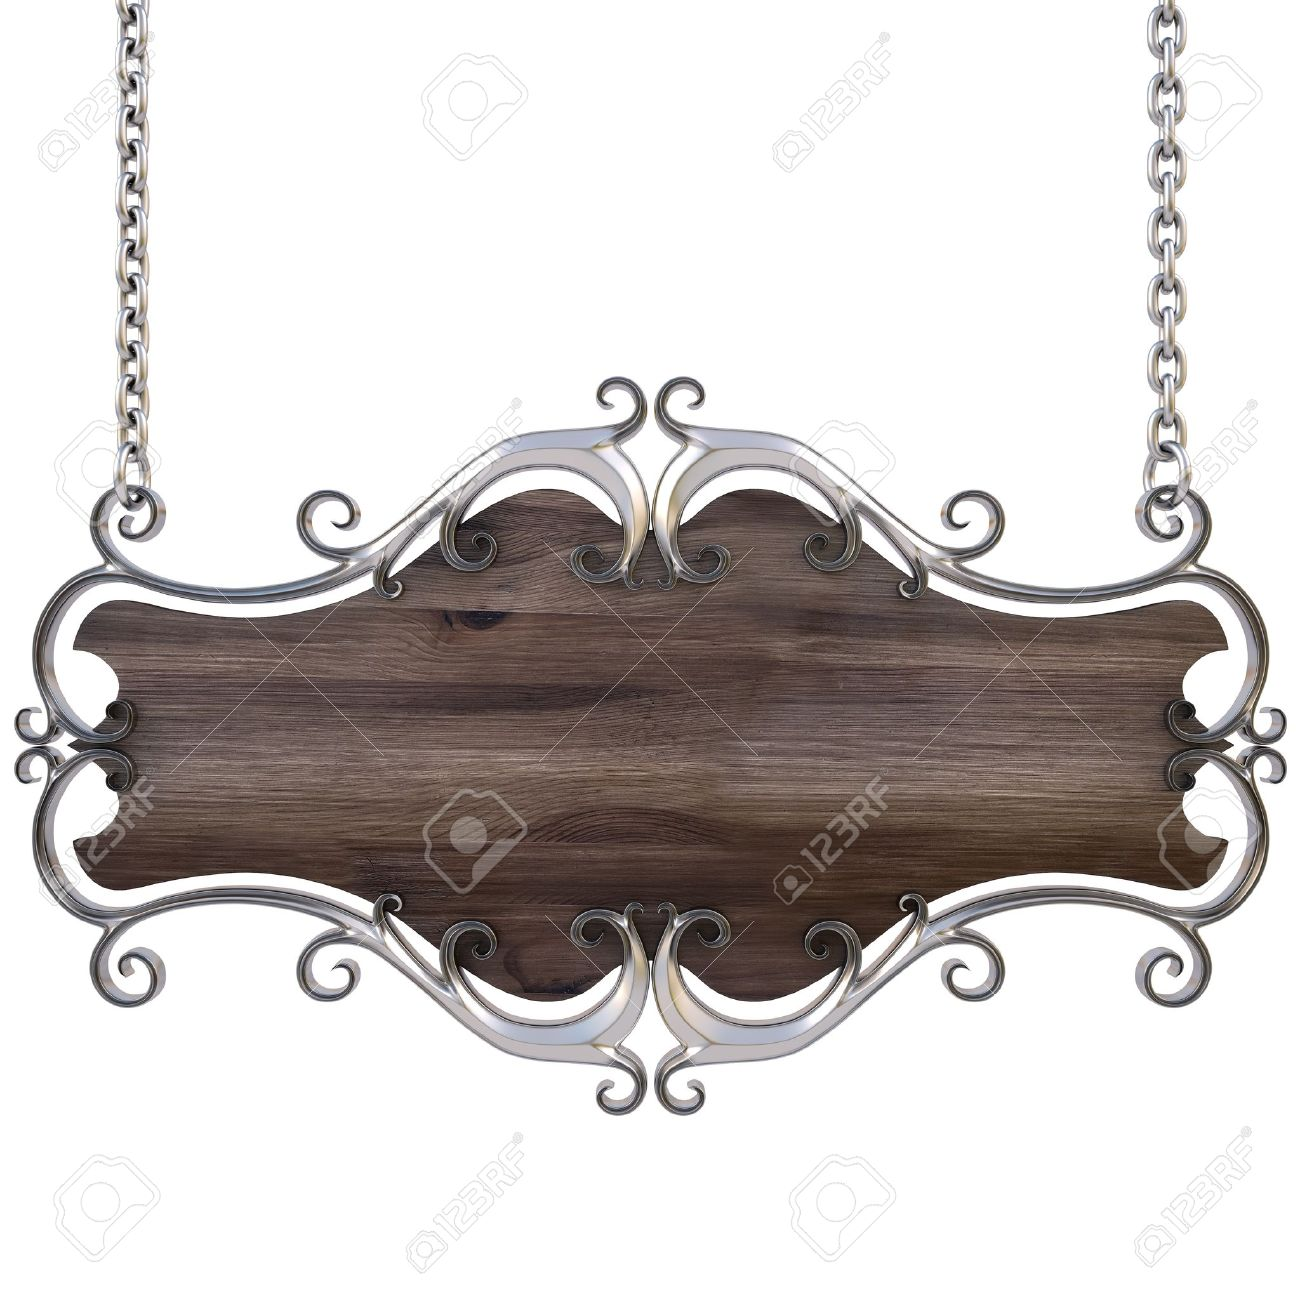 wooden sign in a gold frame with chains. isolated on white. with clipping path. Stock Photo - 9624322